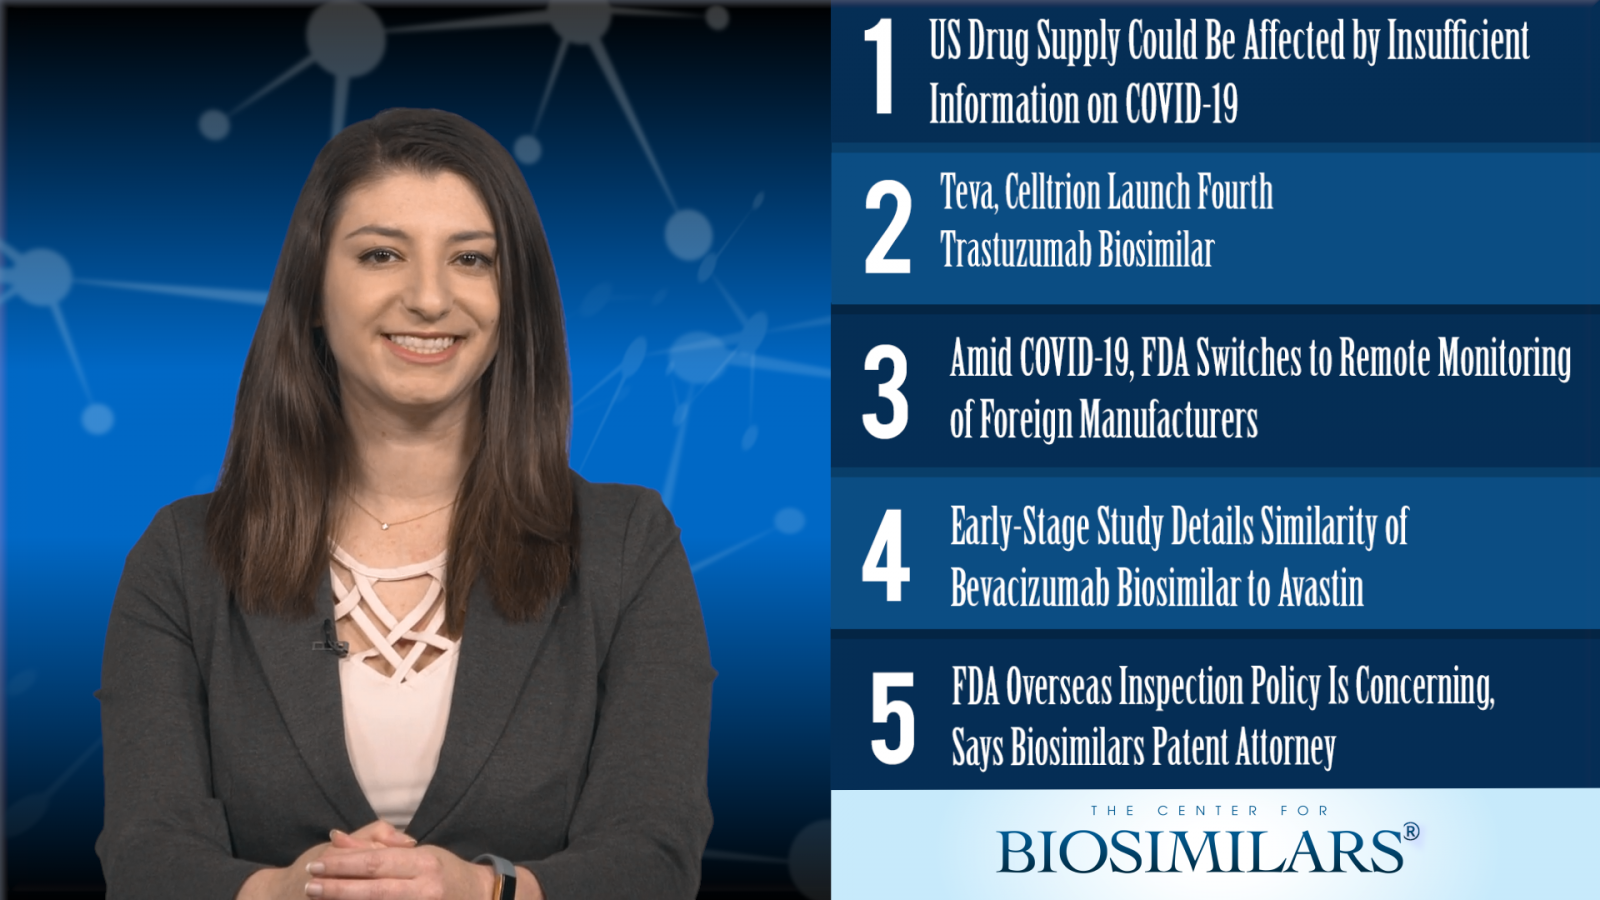 The Top 5 Biosimilars Articles for the Week of March 16